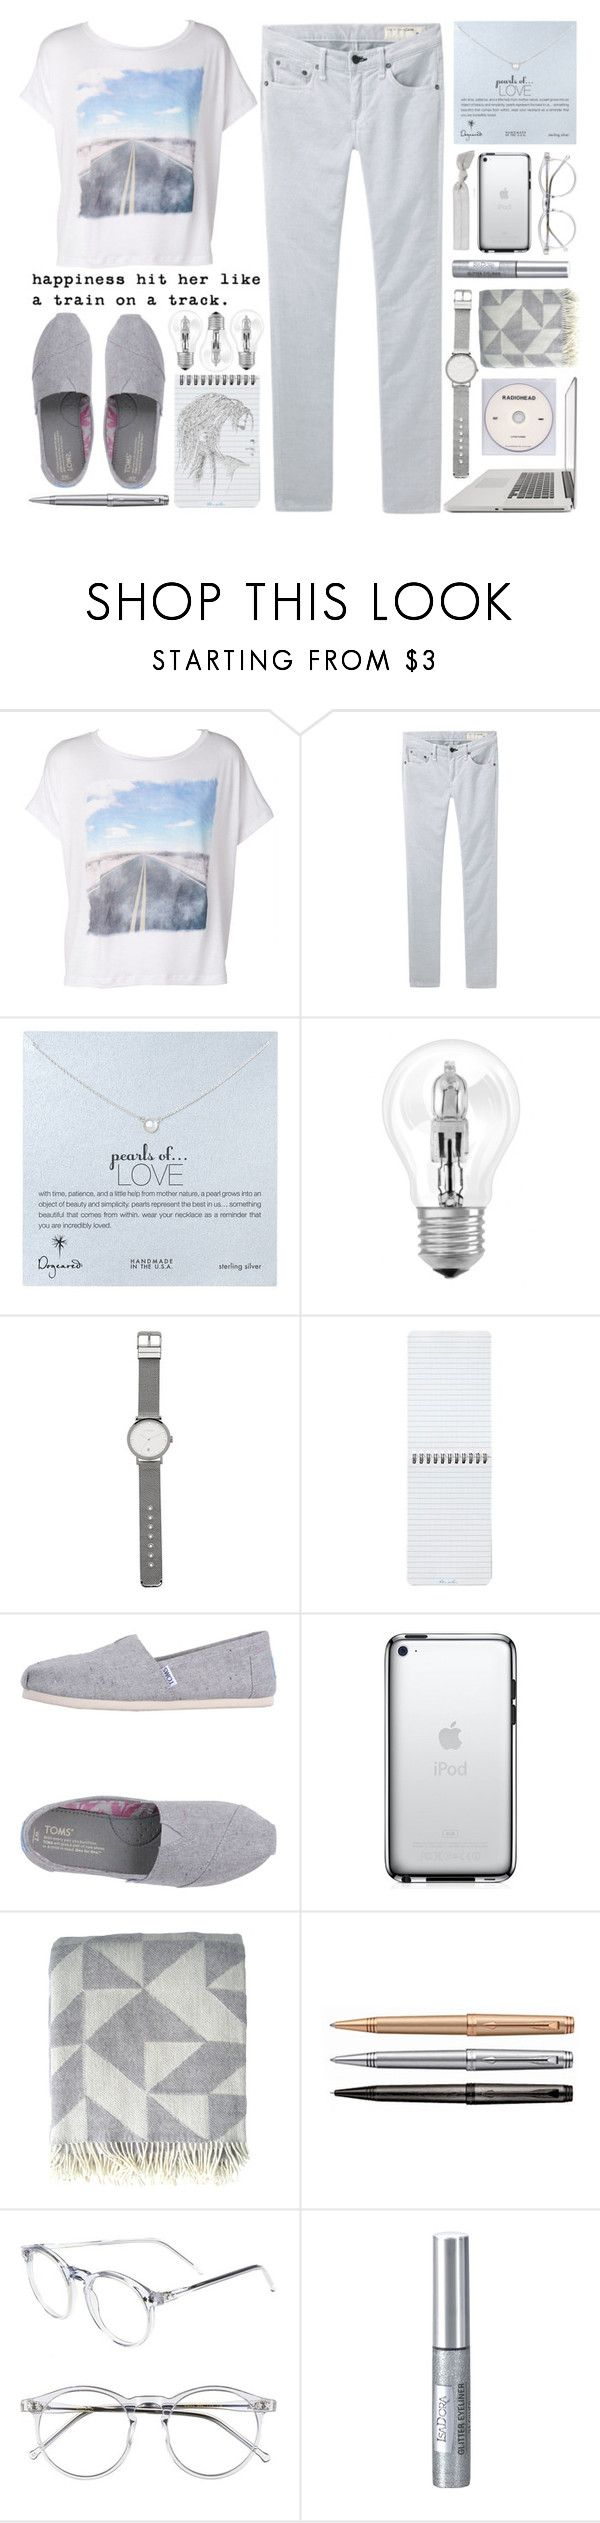 """""""happiness 04.40"""" by yexyka ❤ liked on Polyvore featuring rag & bone/JEAN, Dogeared, Osram, Witchery, Patagonia, TOMS, KEEP ME, Ratzer, Wildfox and Isadora"""